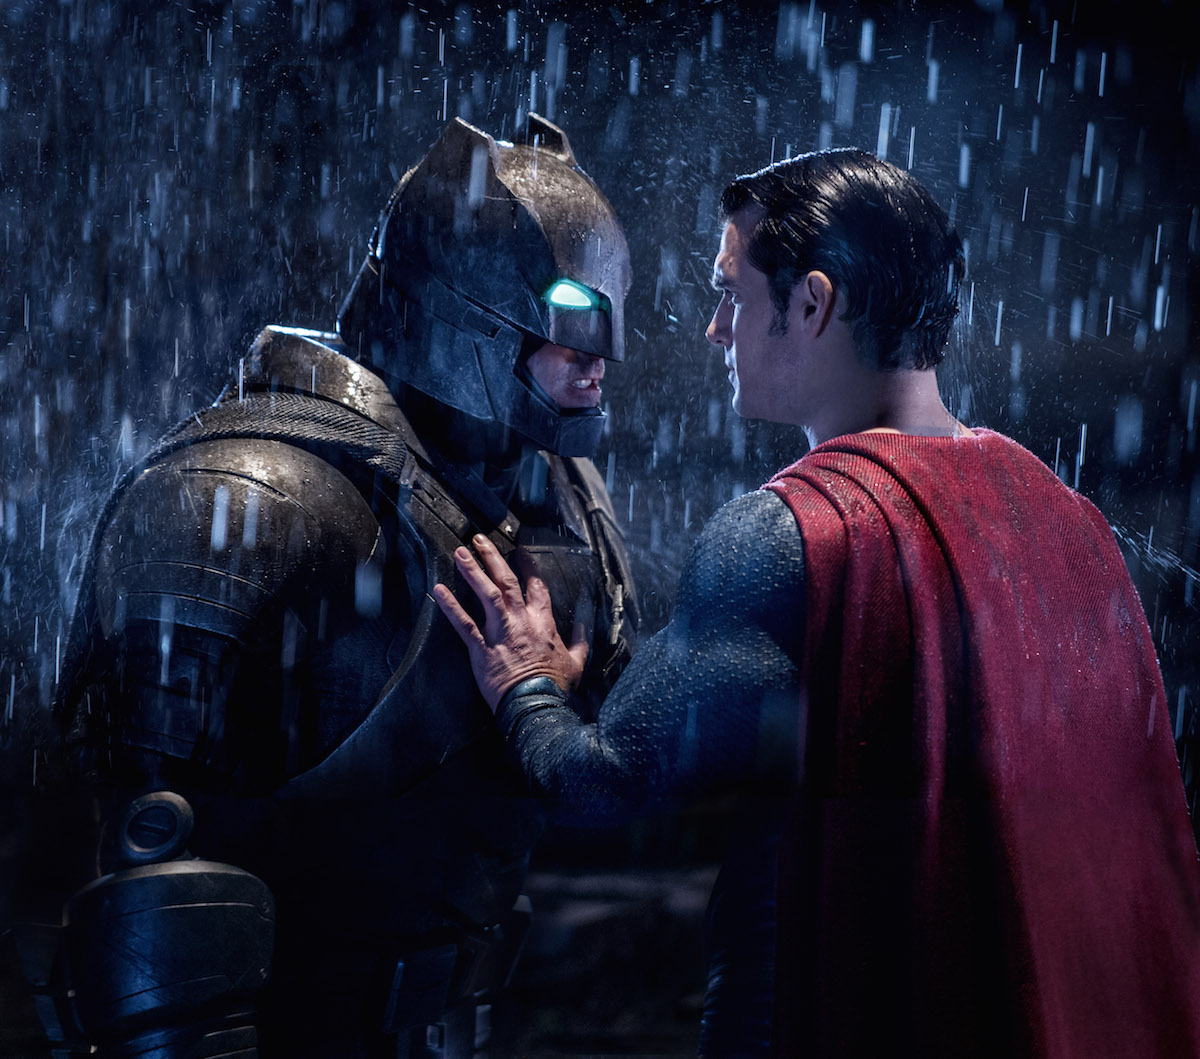 A scene from Batman v Superman: Dawn Of Justice